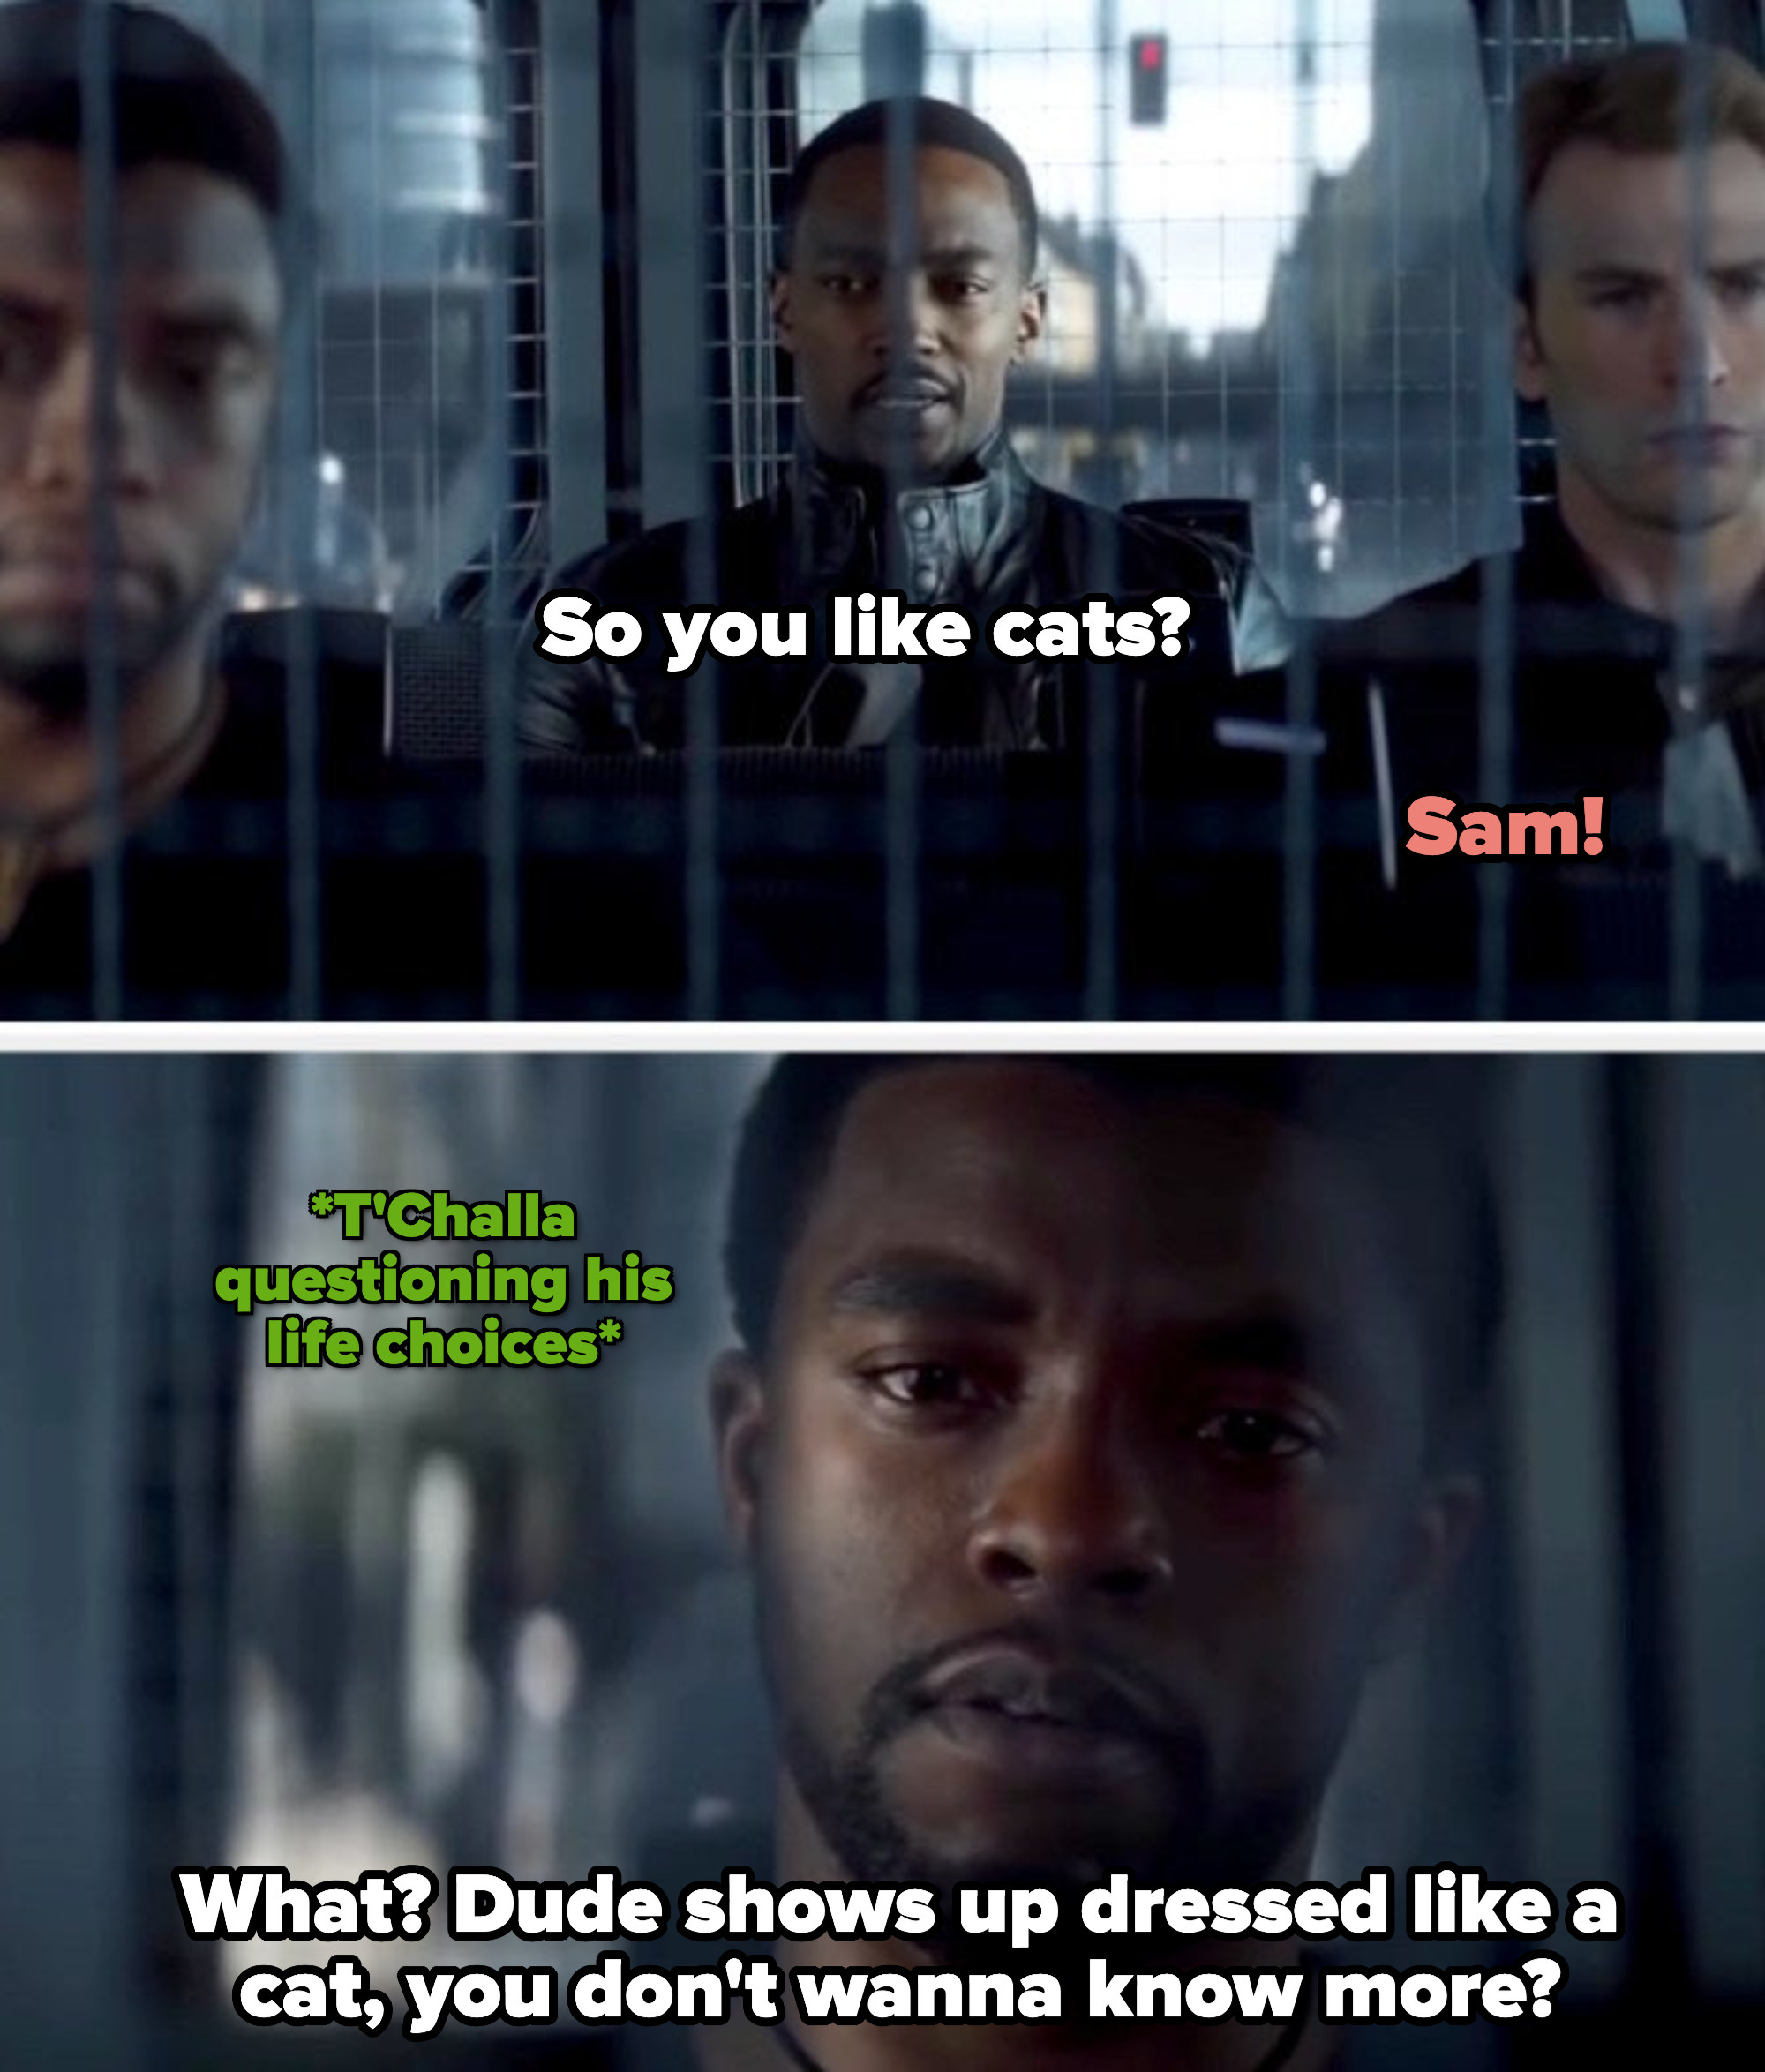 Sam asking T'Challa if he likes Cats